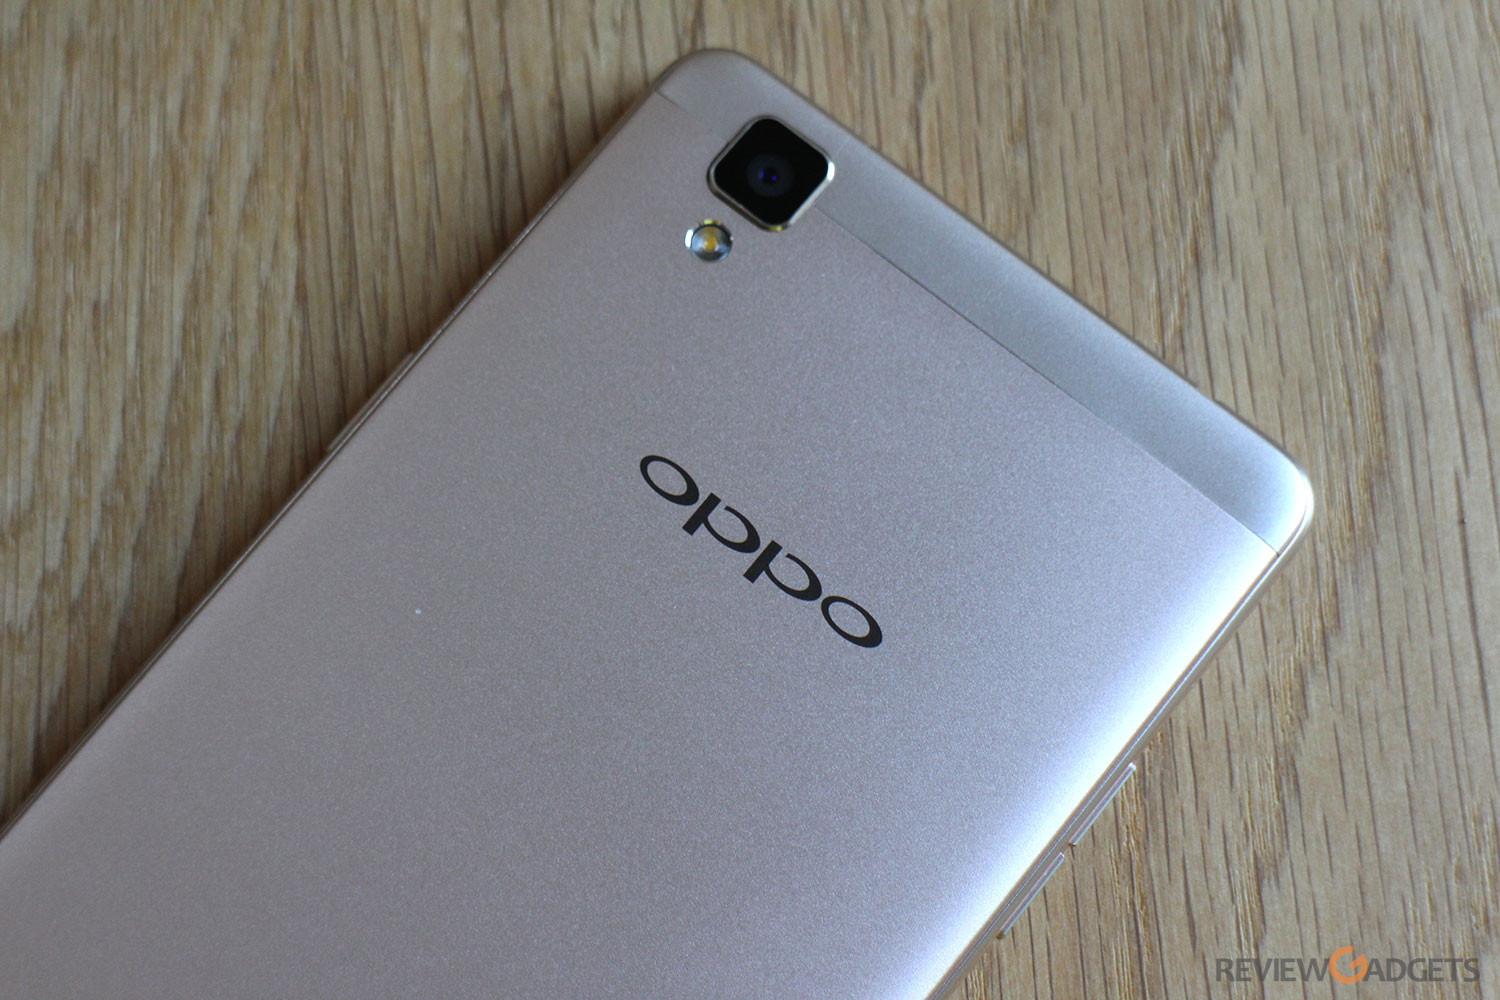 Oppo f1s selfie focused smartphone launching in August